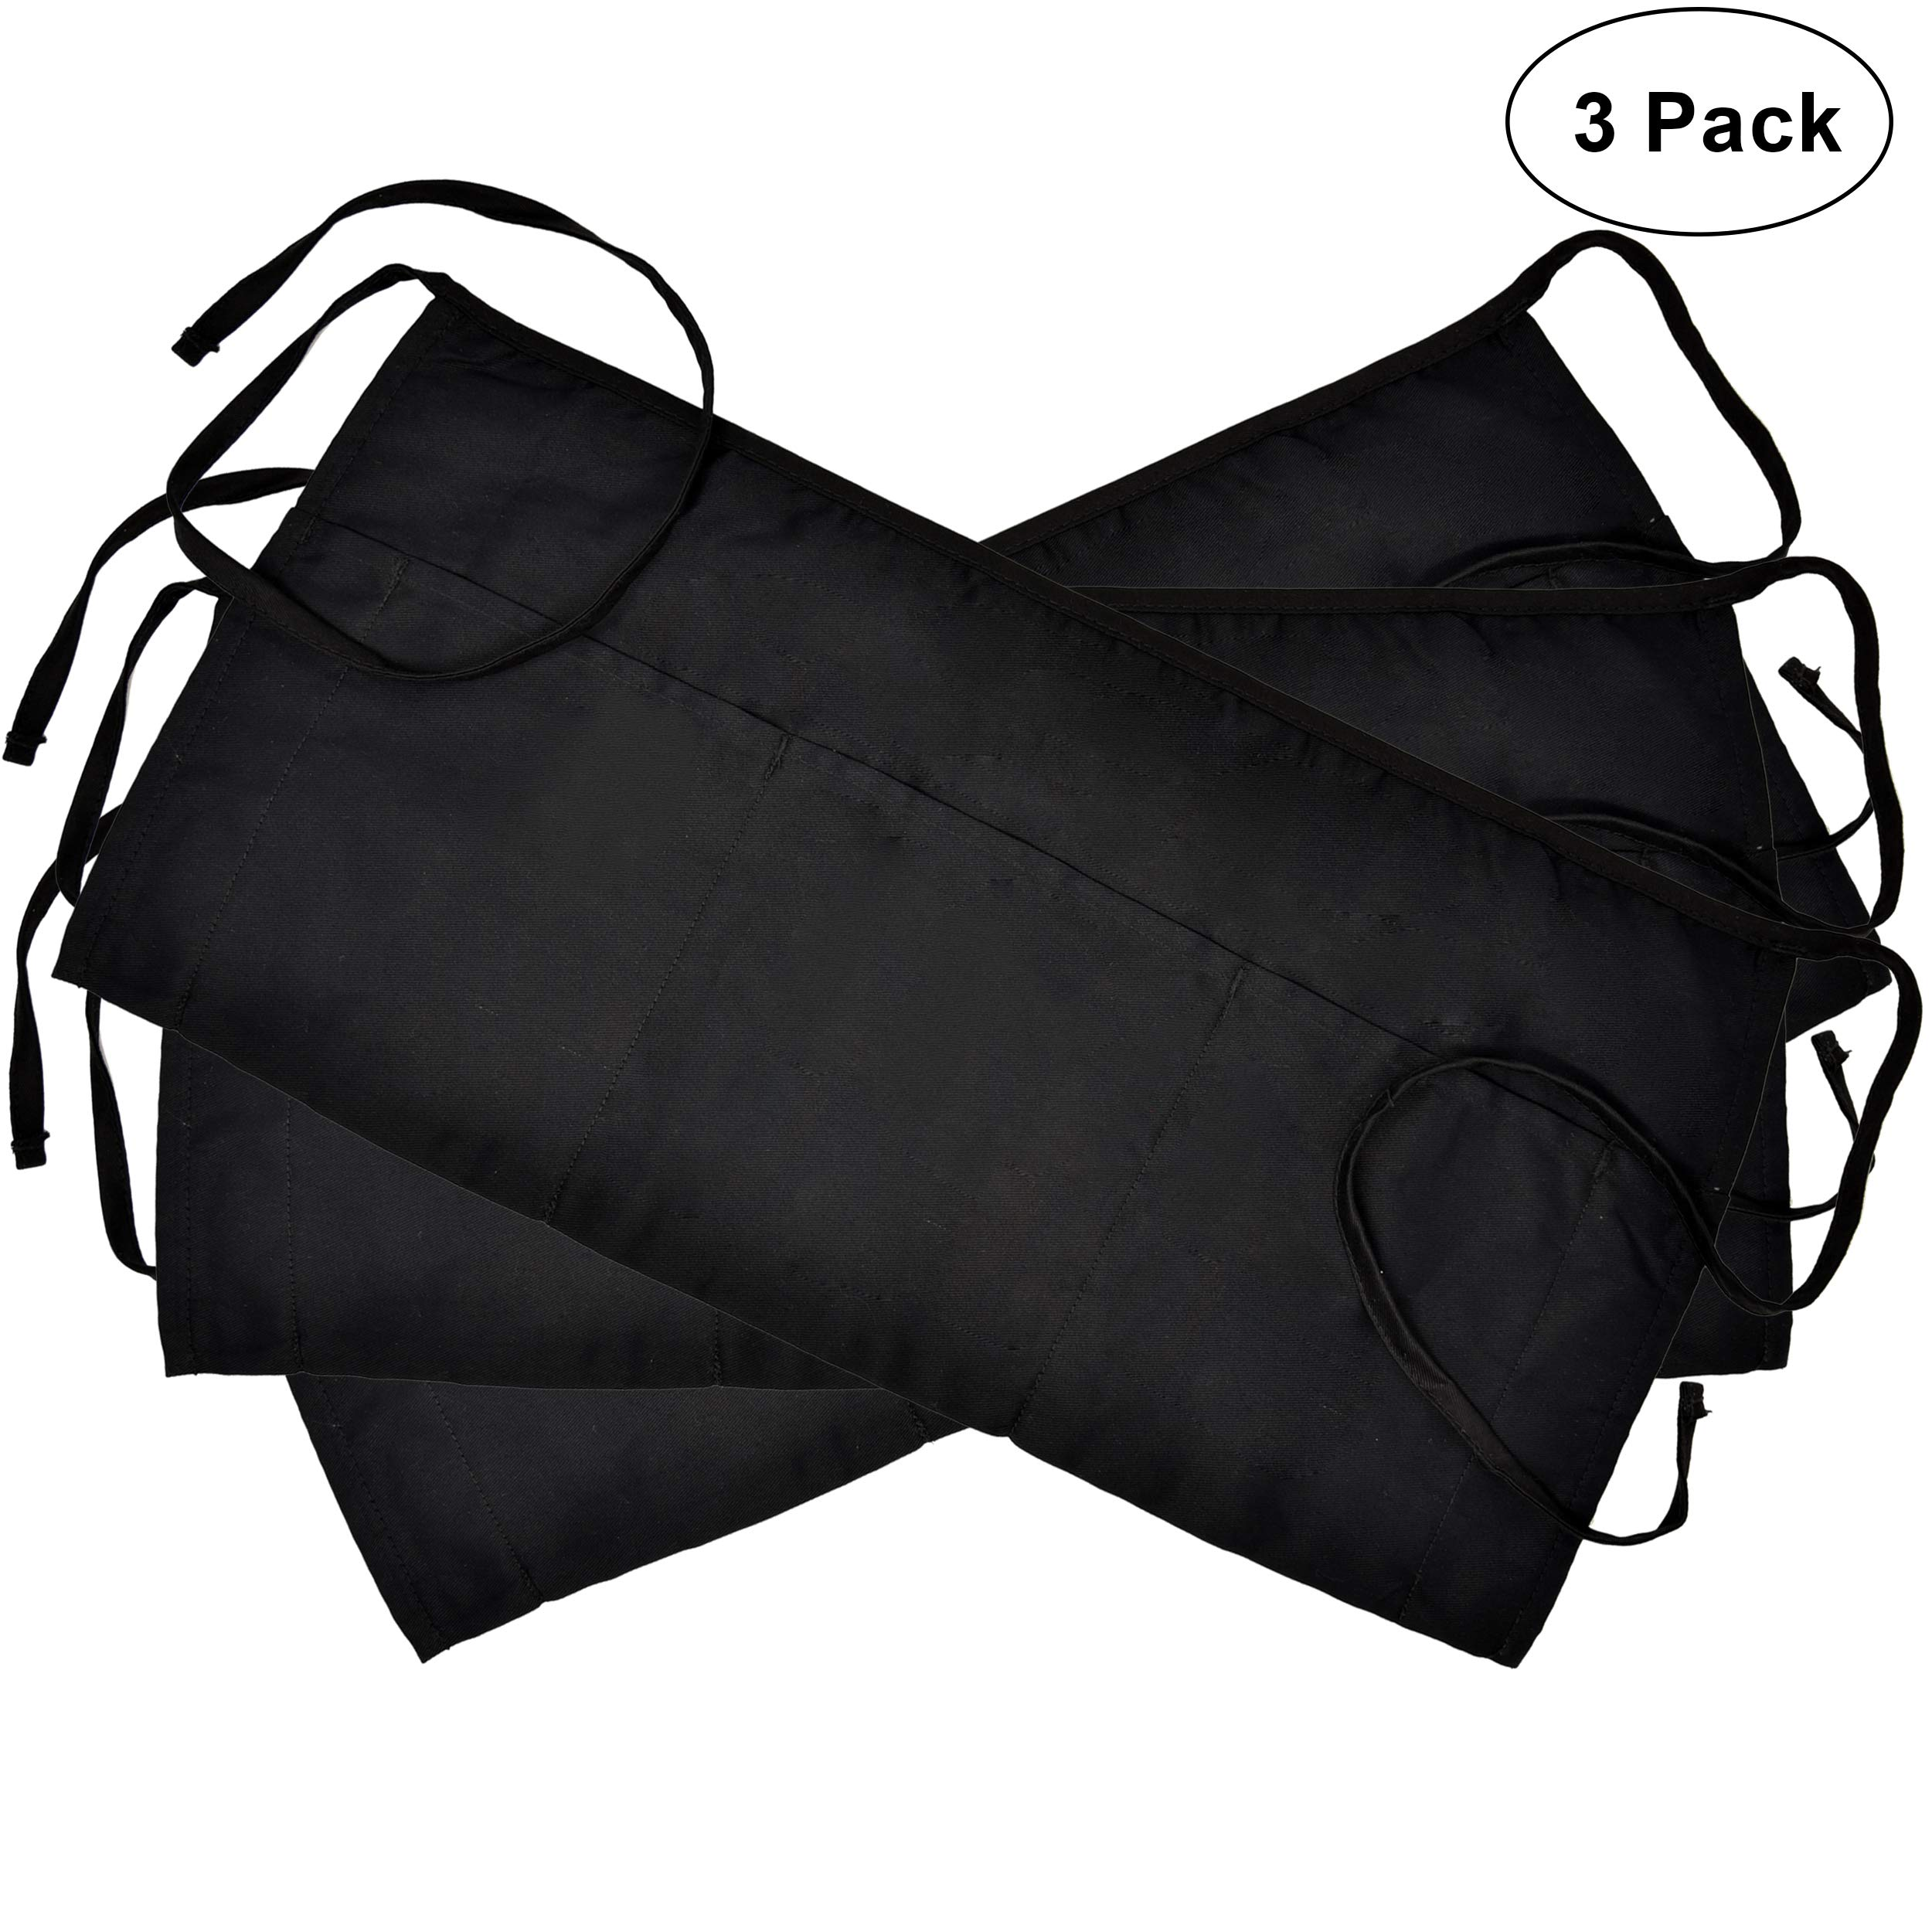 3 Pockets Cotton Waist Apron 3 Pack 24 x 12 inch Kitchen Restaurant Bistro Craft Garden Half Short Aprons For Men, Women, Chef, Baker, Servers, Waitress, Waiter, Craftsmen Work Apron Uniform, Black